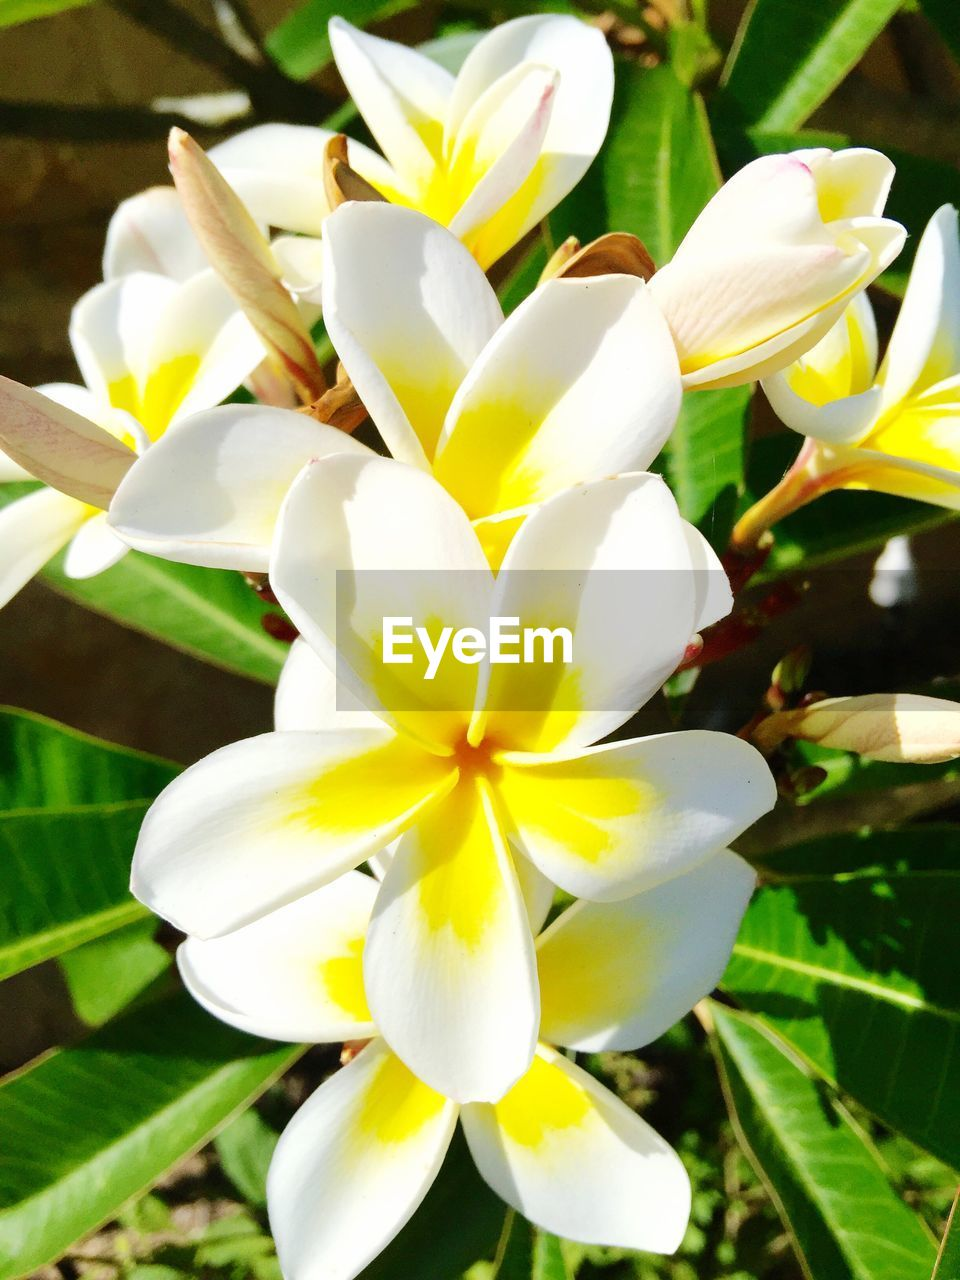 flower, petal, beauty in nature, fragility, nature, flower head, freshness, growth, white color, day, close-up, blooming, plant, outdoors, no people, frangipani, yellow